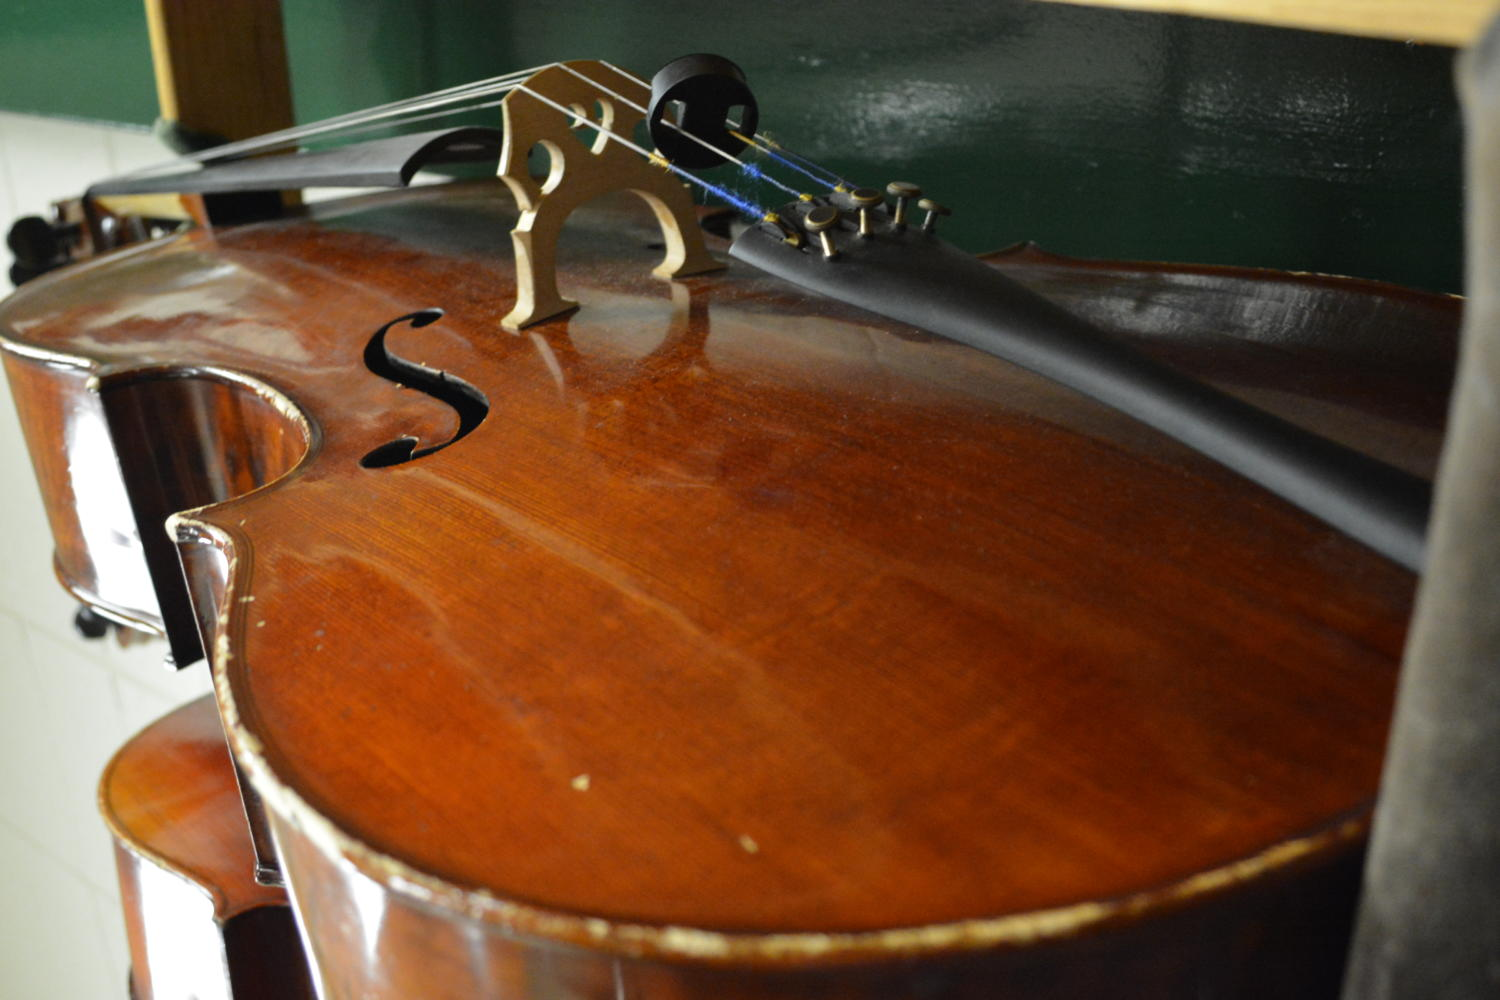 A student's cello is being stored in the instrument room in the Orchestra class. During most other hours this instrument would have been out and playing beautiful music.